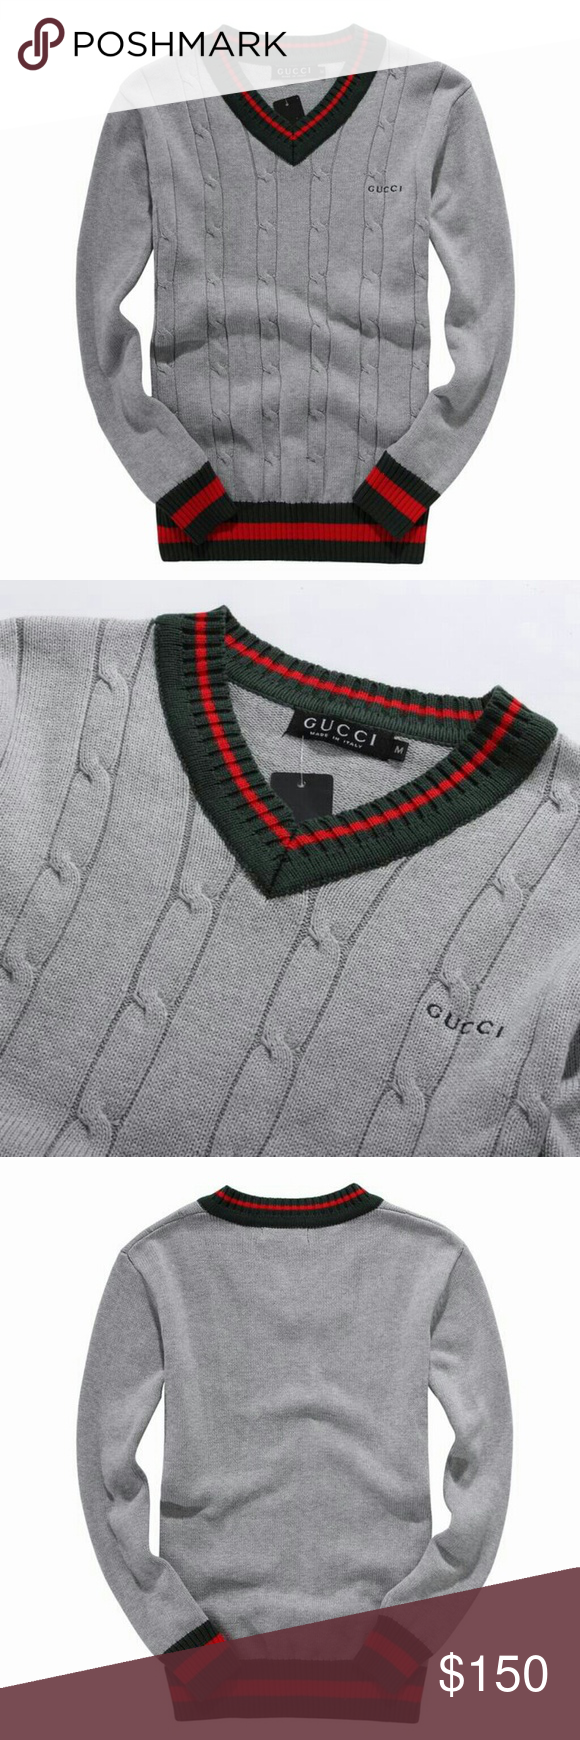 Gucci sweater V-neck Gucci Sweater V-Neck Gucci Sweaters V-Neck